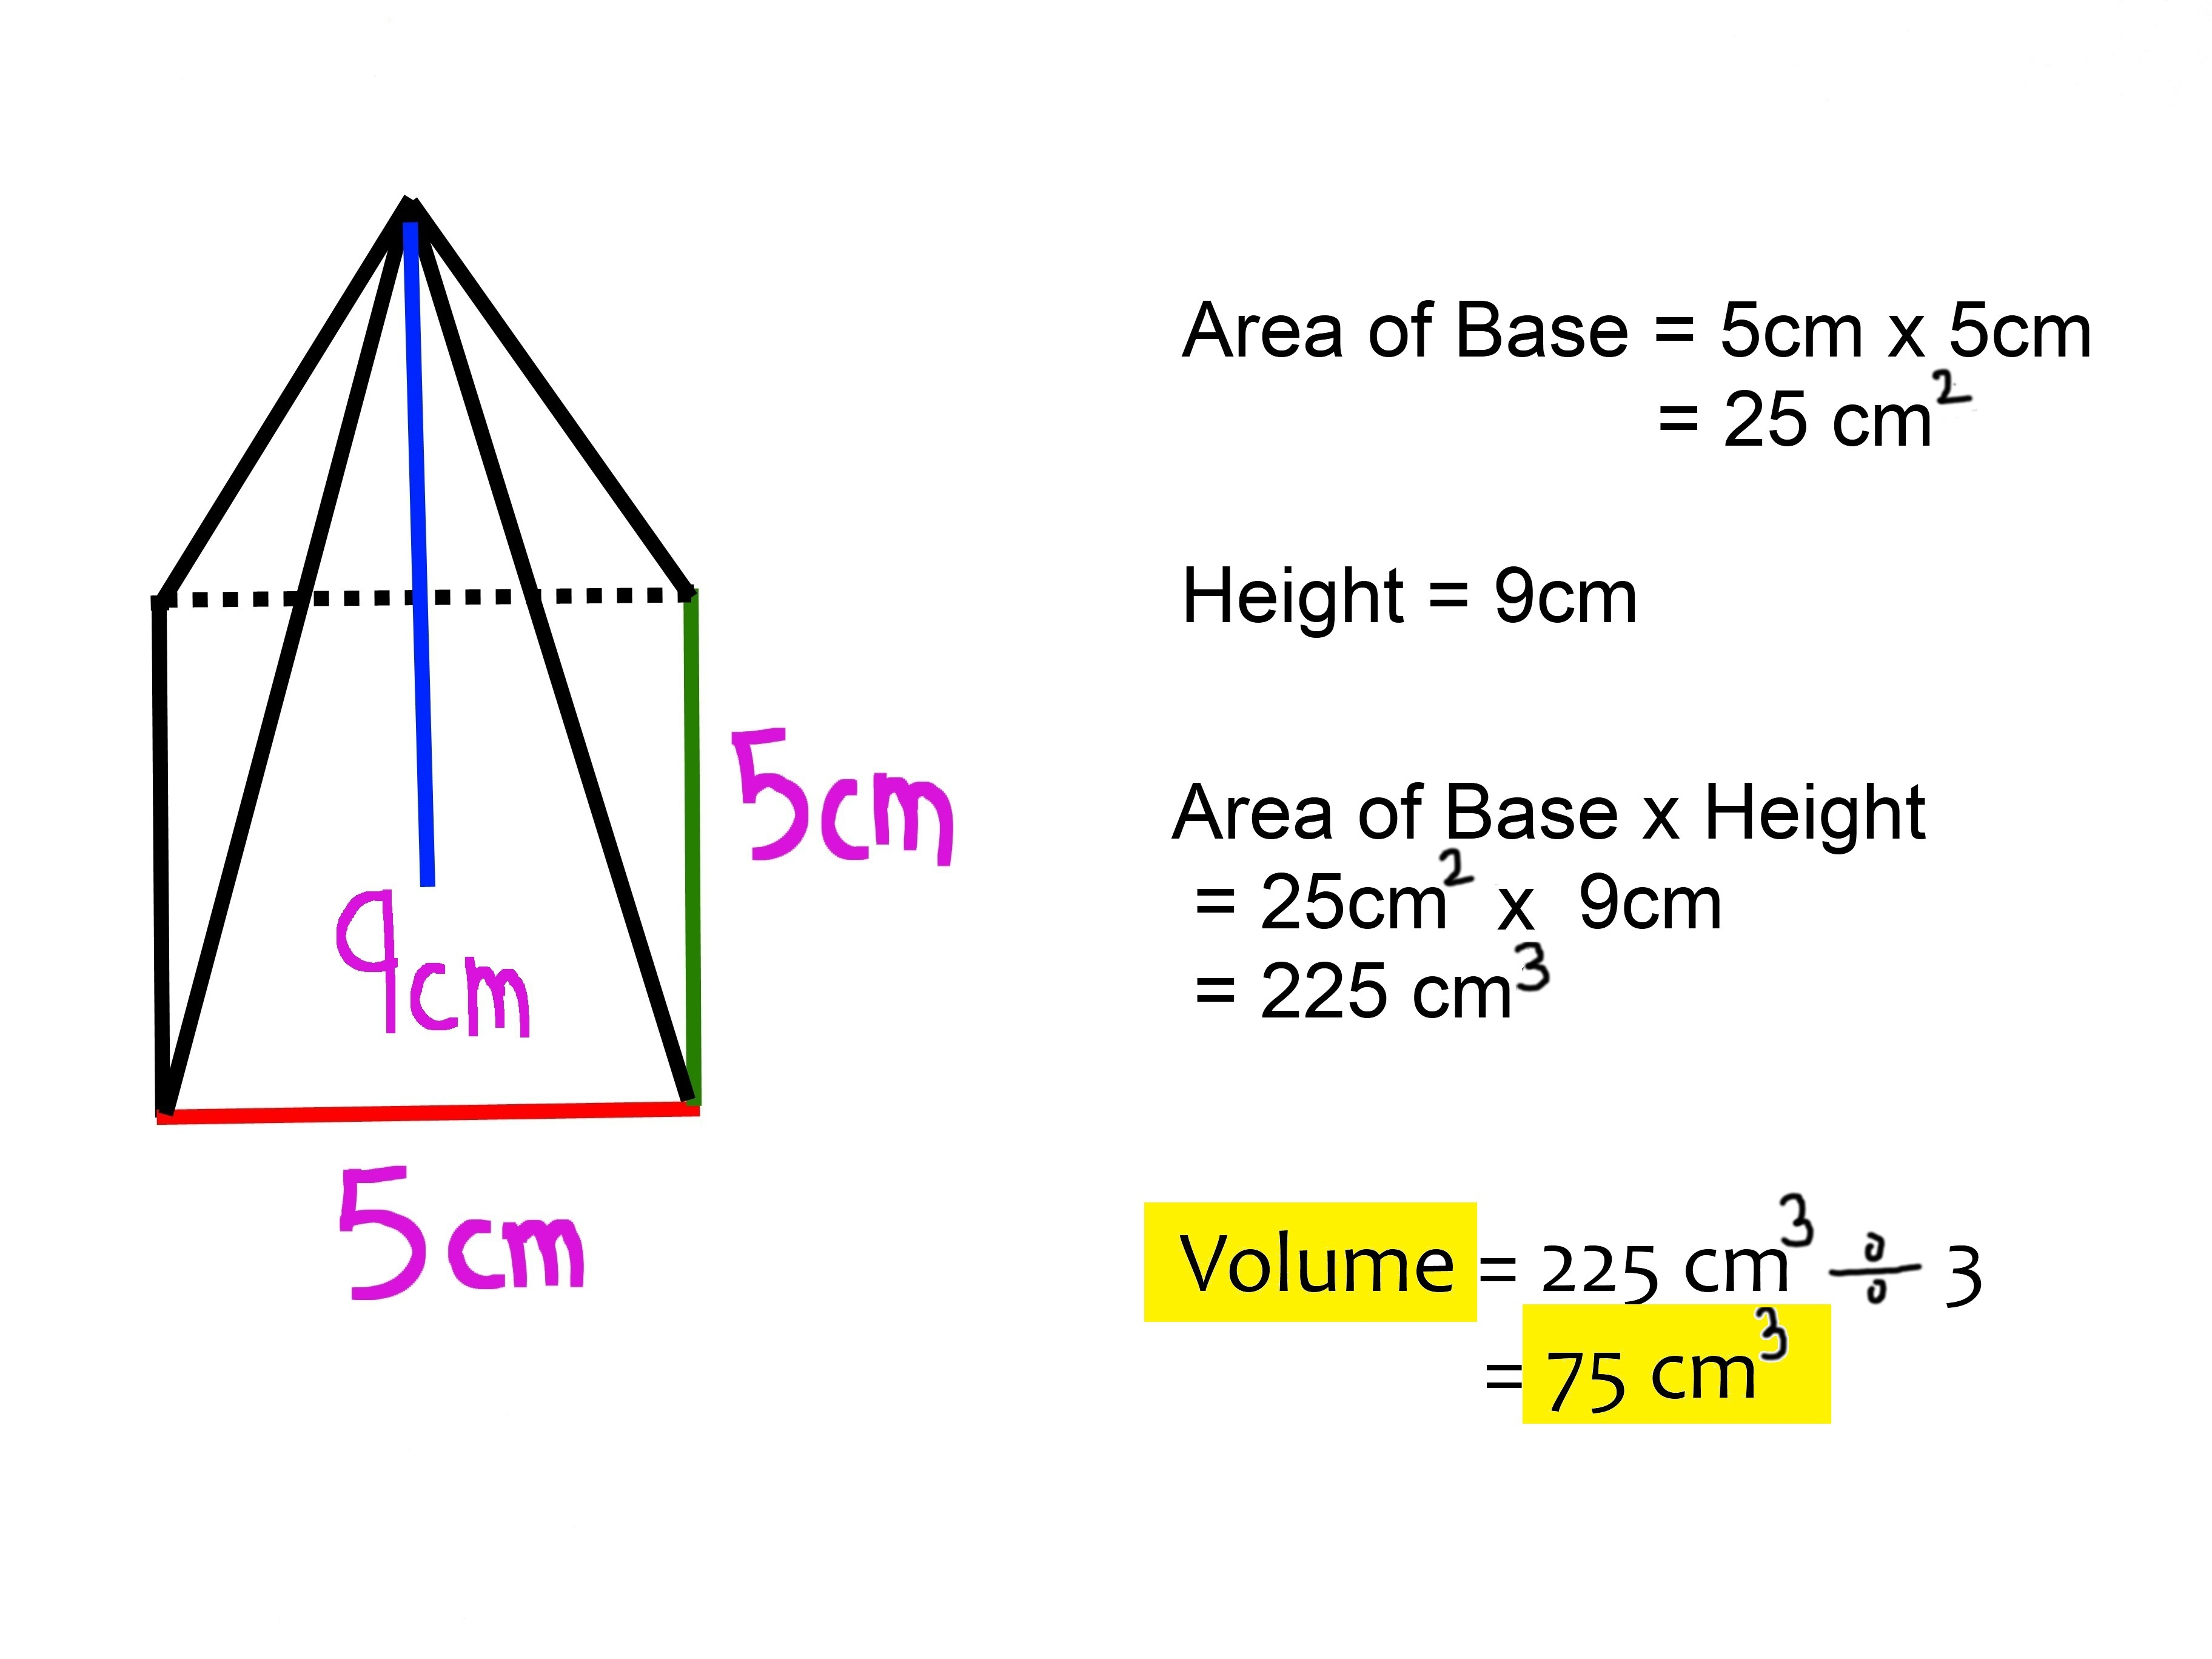 2 Easy Ways To Calculate The Volume Of A Square Pyramid